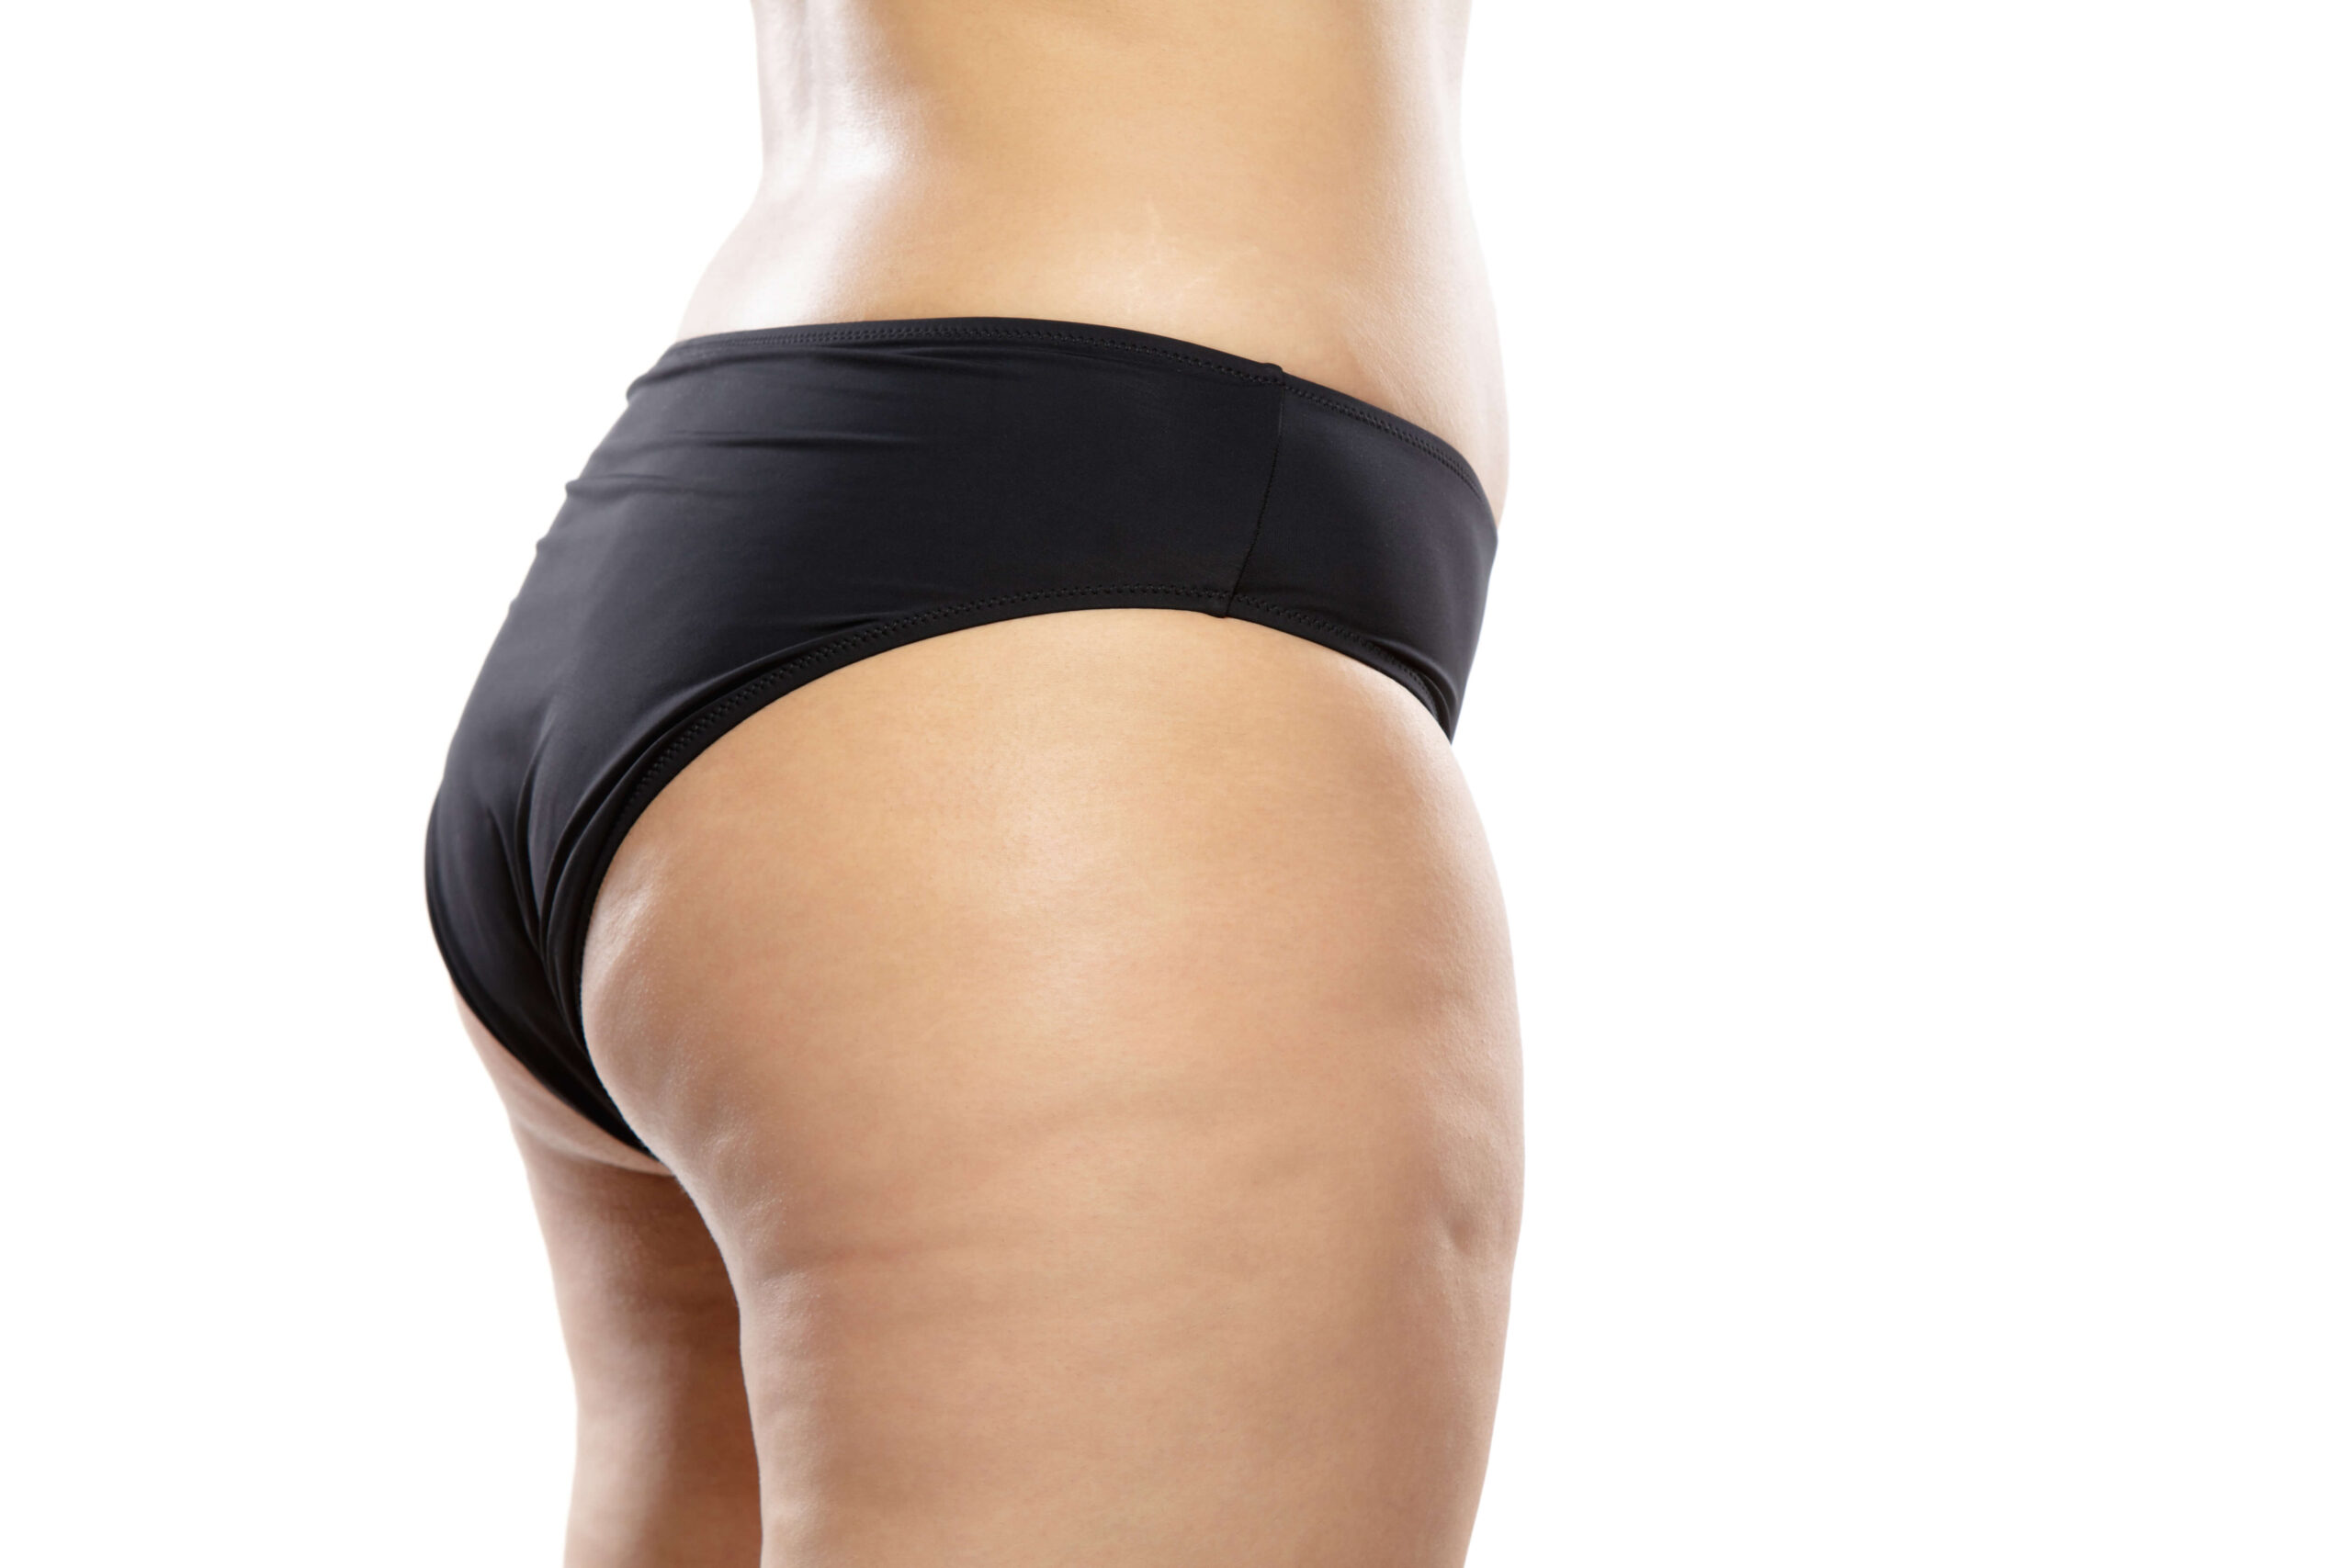 What is dry brushing? Does dry brushing help reduce cellulite?